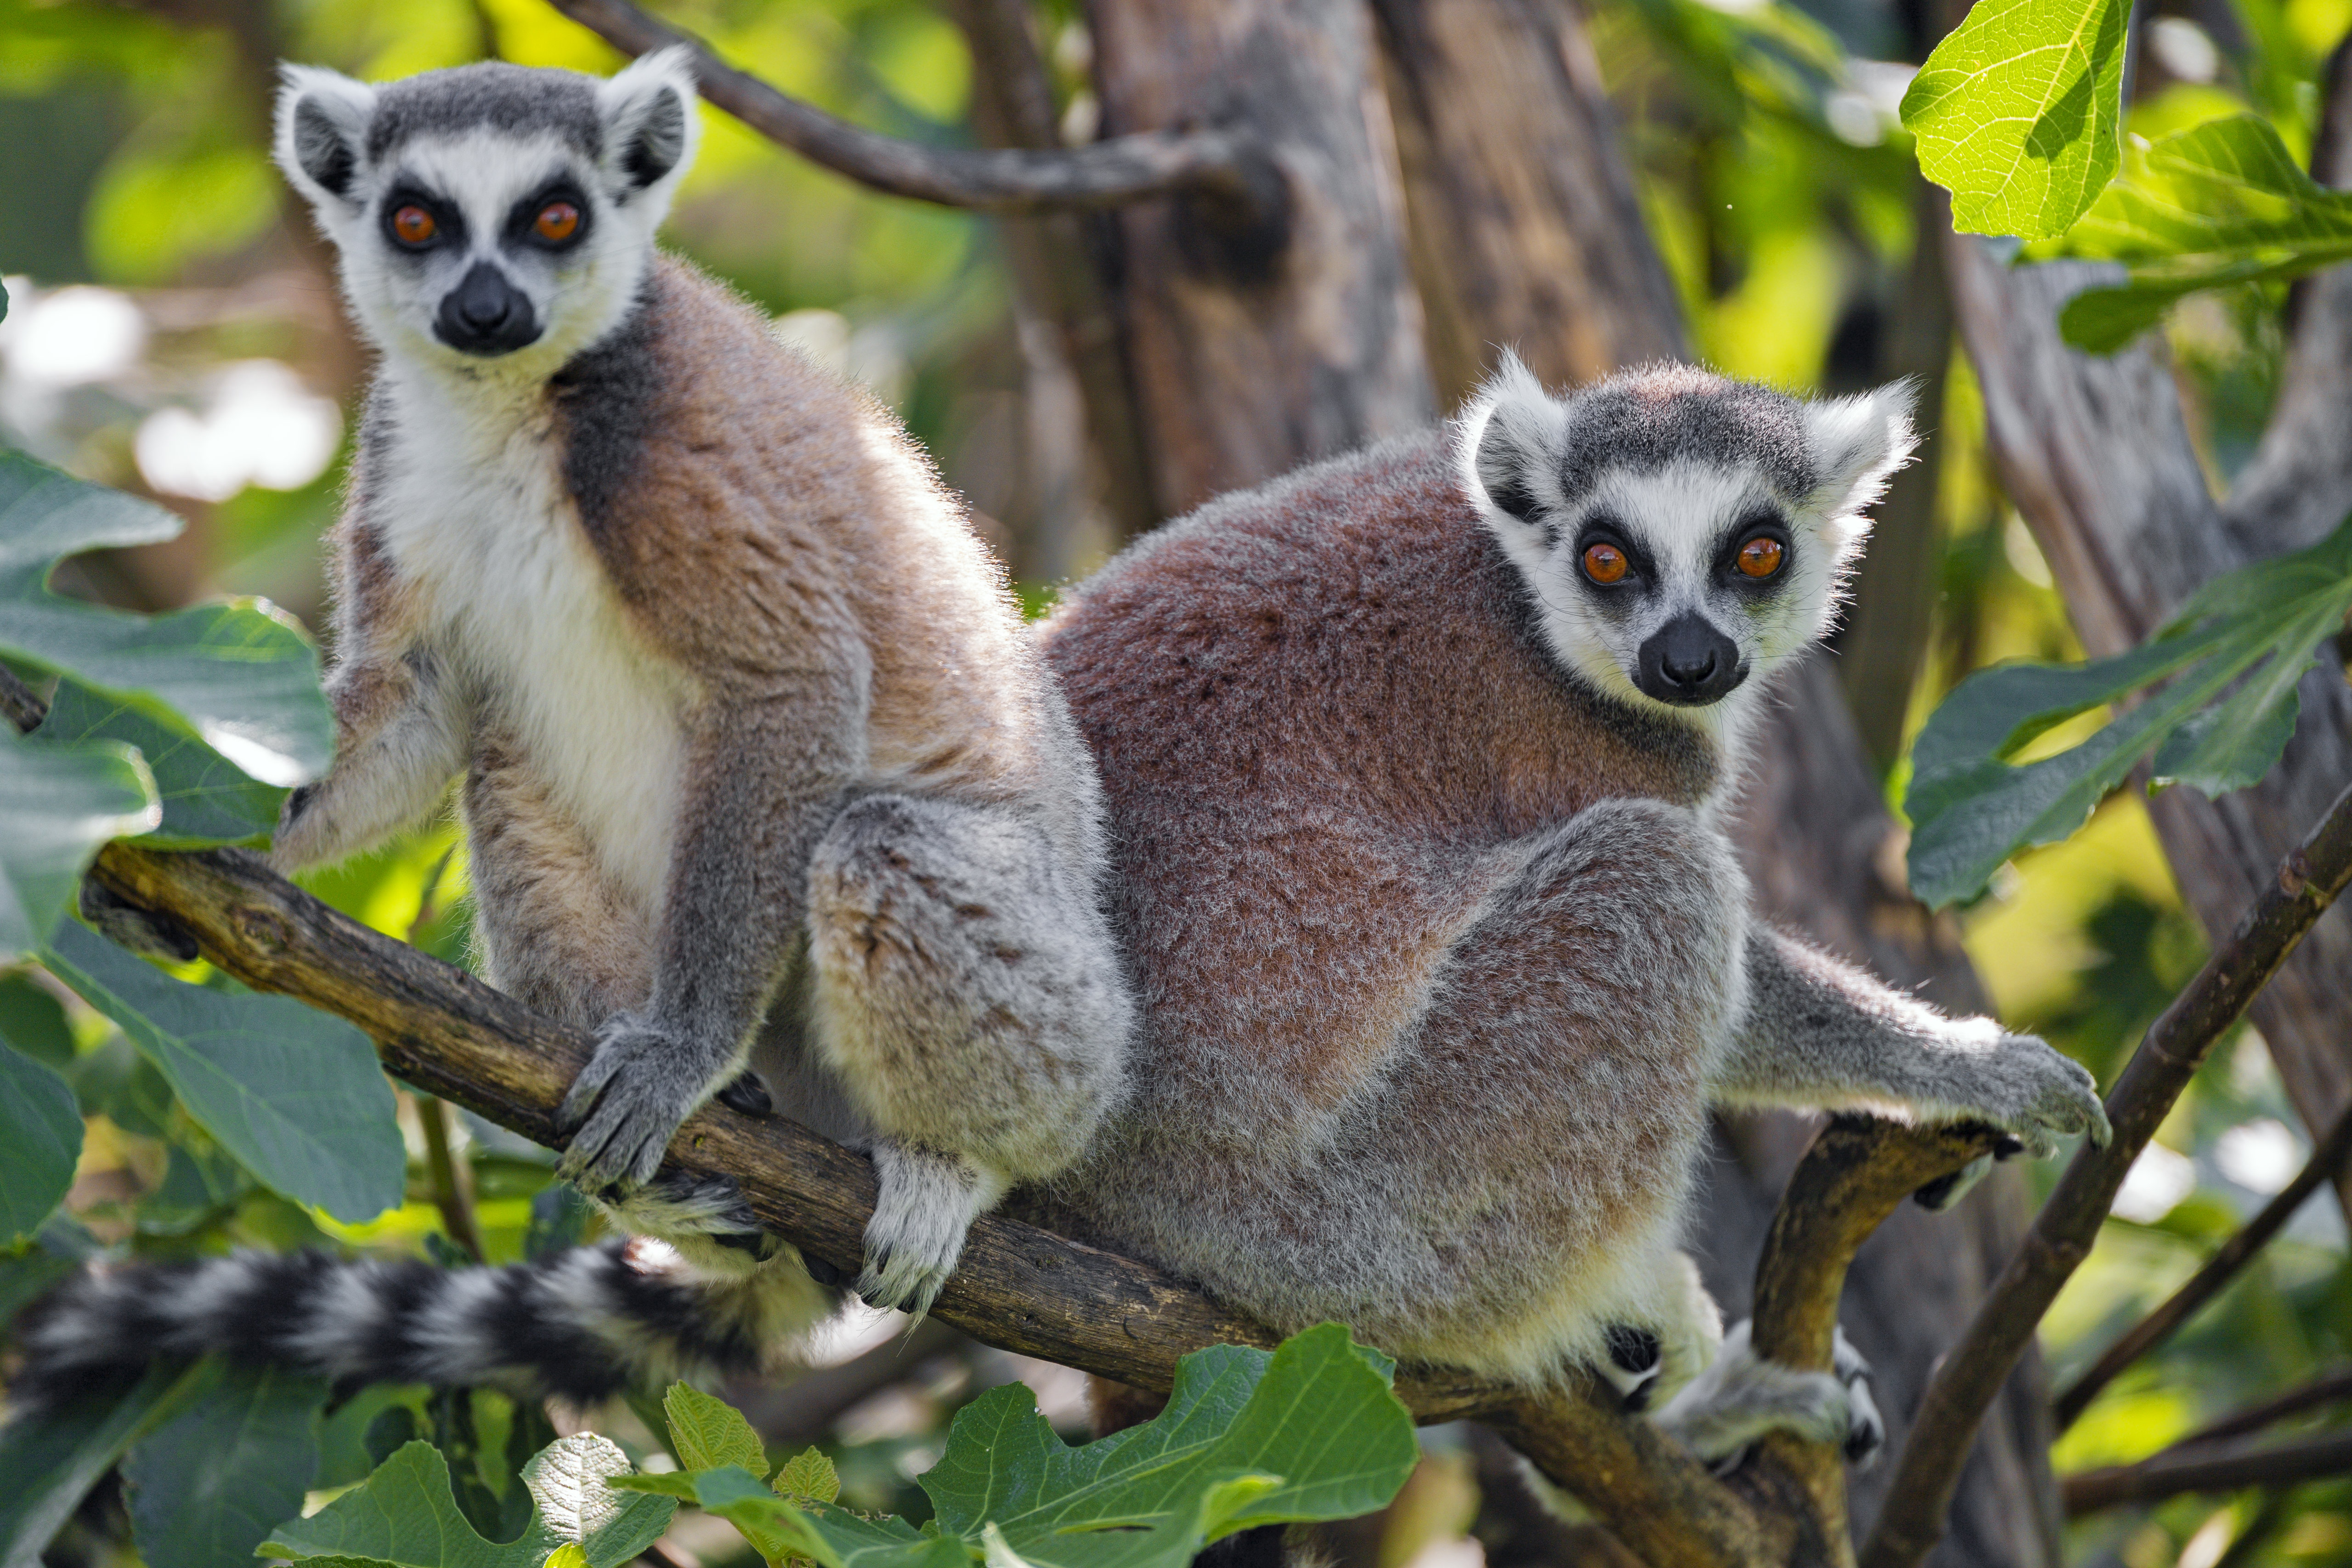 149487 download wallpaper Animals, Lemur, Animal, Sight, Opinion, Wood, Tree screensavers and pictures for free